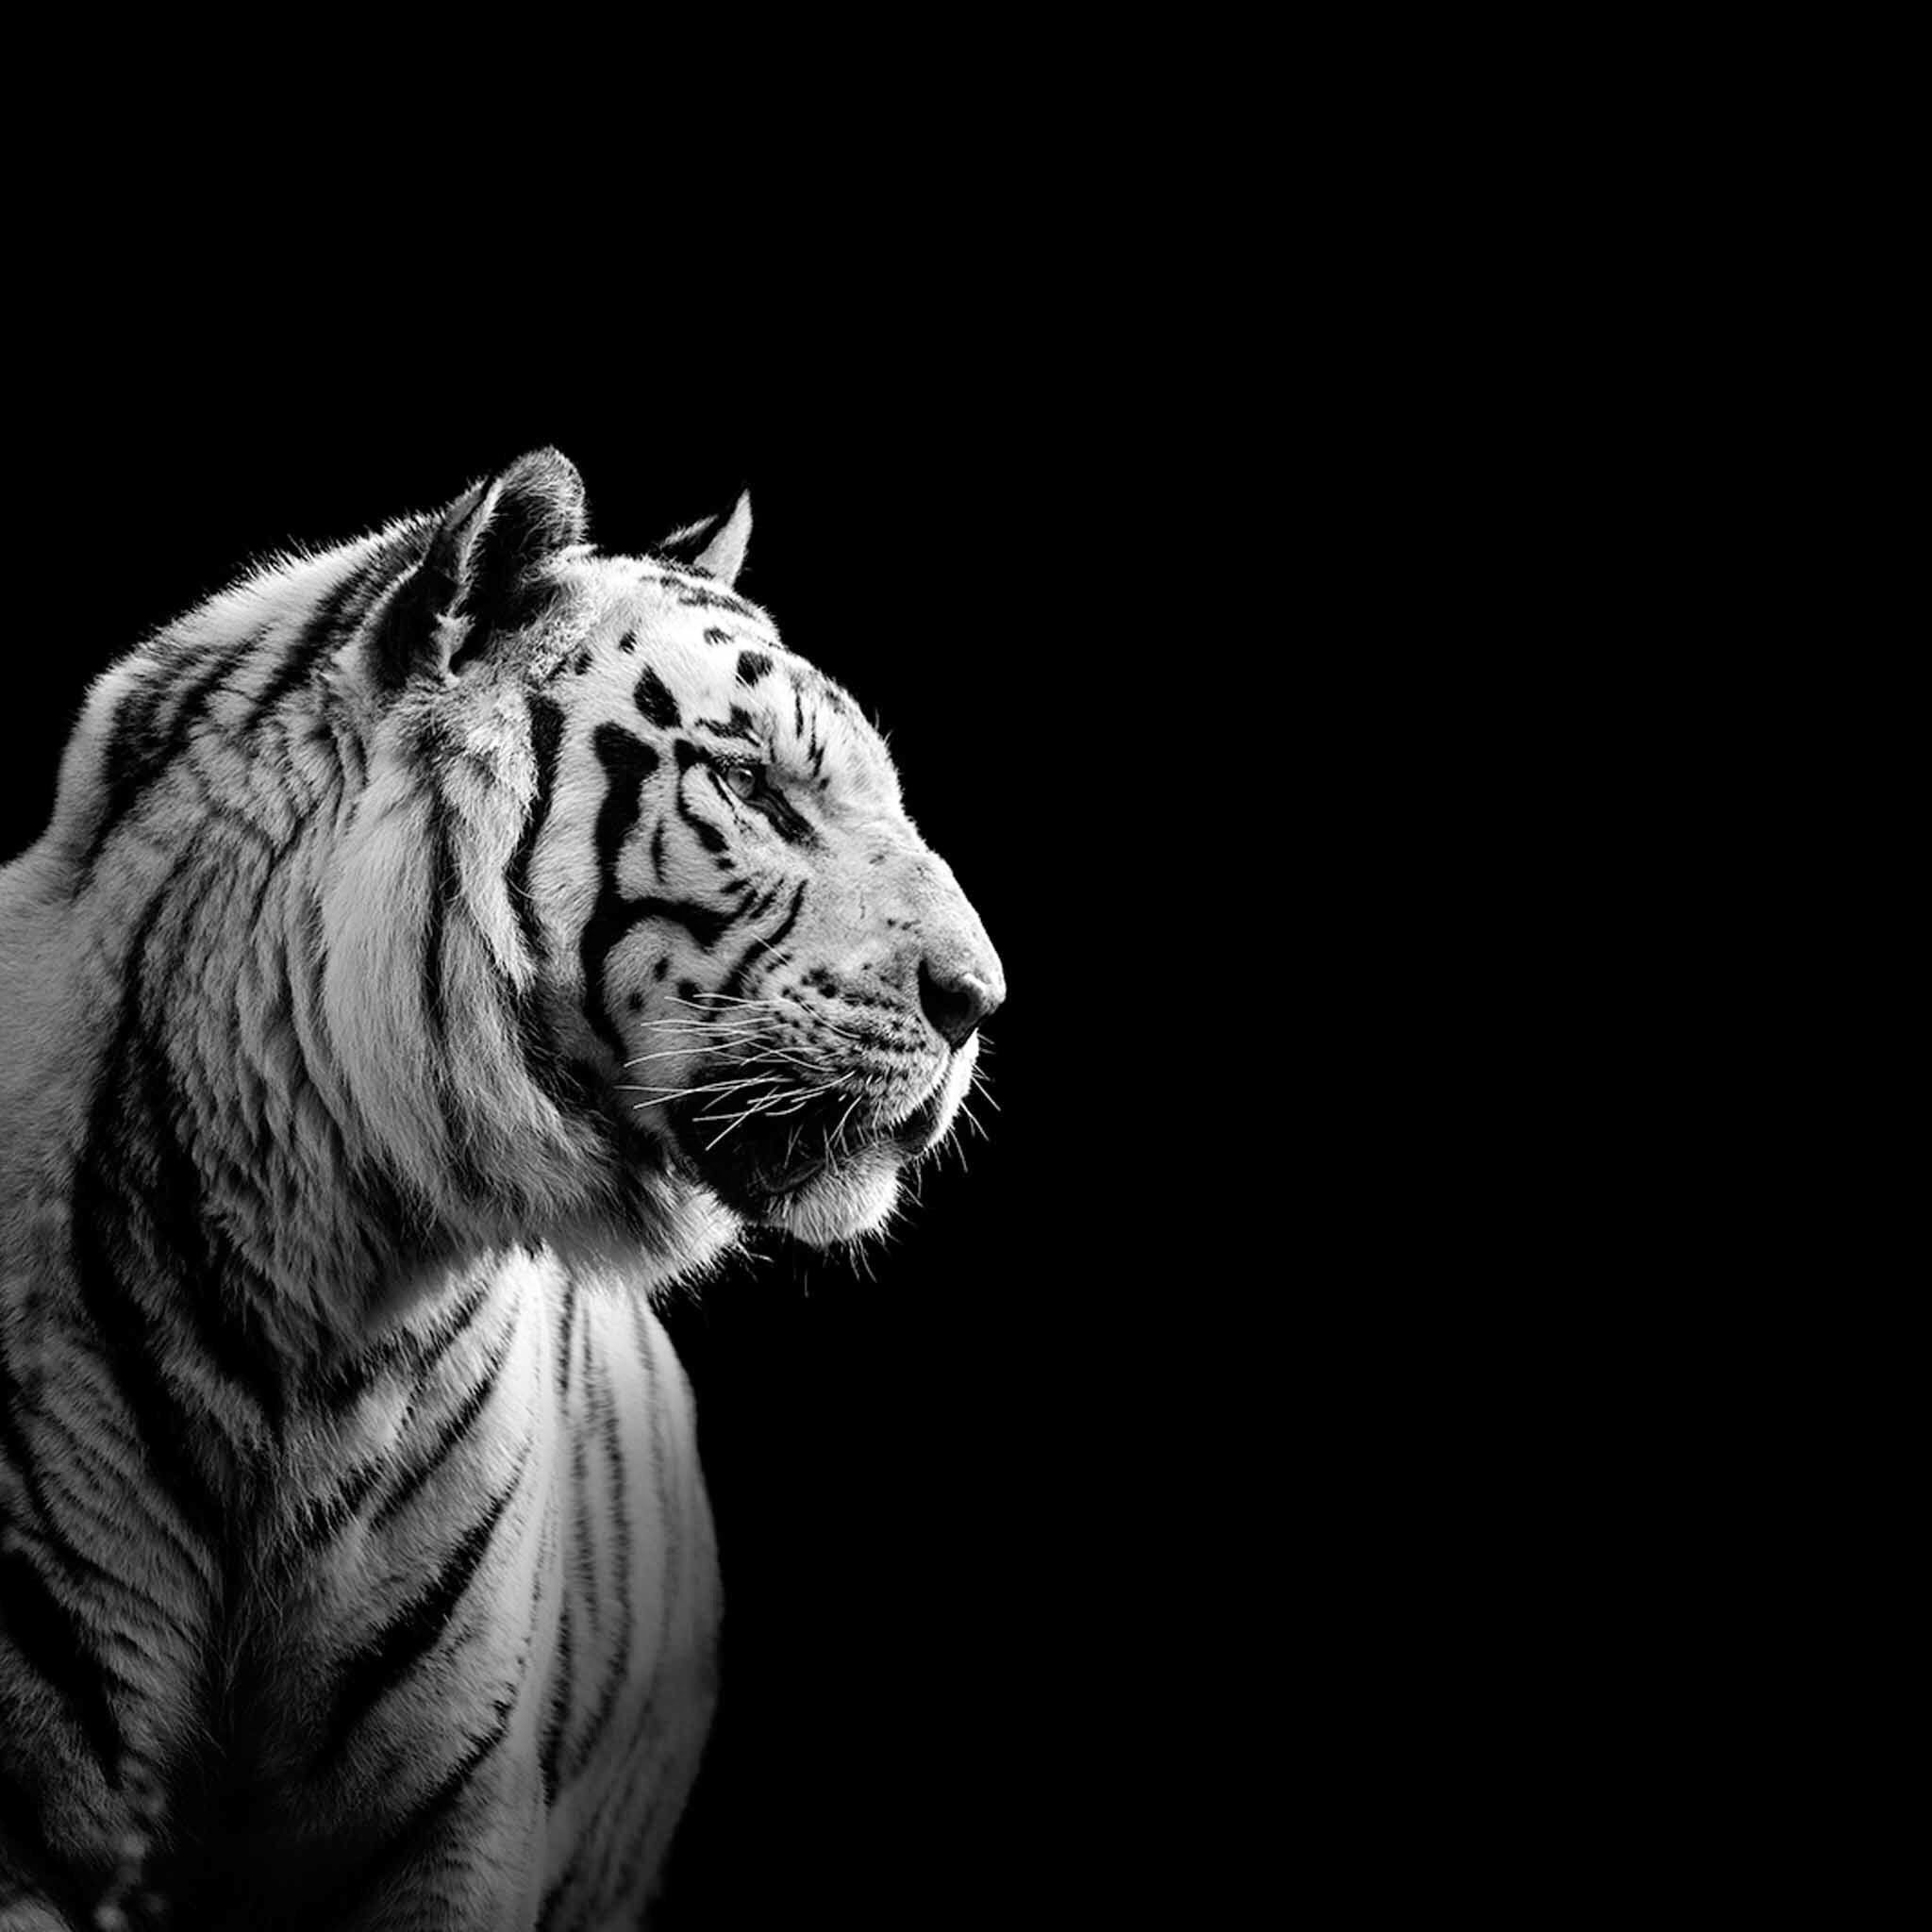 Pin By Ajda Valcl On Drawings Tiger Images Tiger Wallpaper Tiger Photography